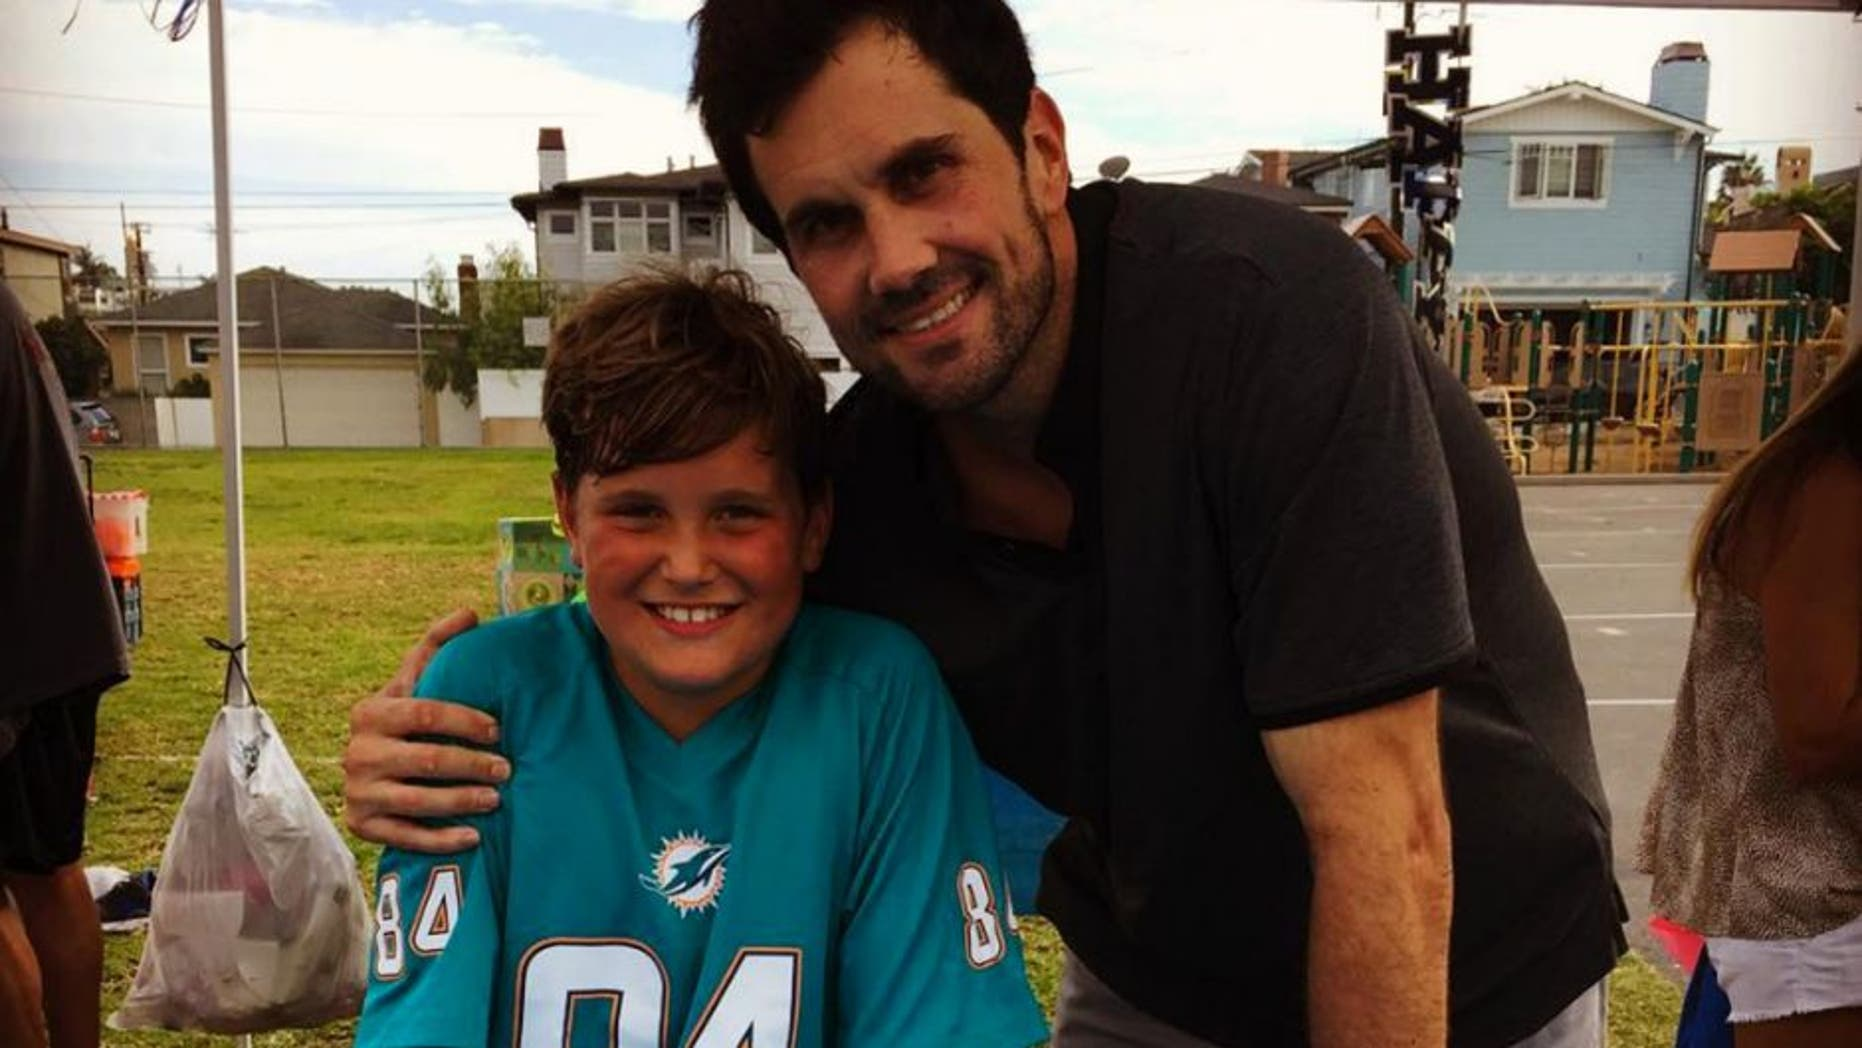 Matt Leinart showed off his son Cole's football talents in an impressive video.